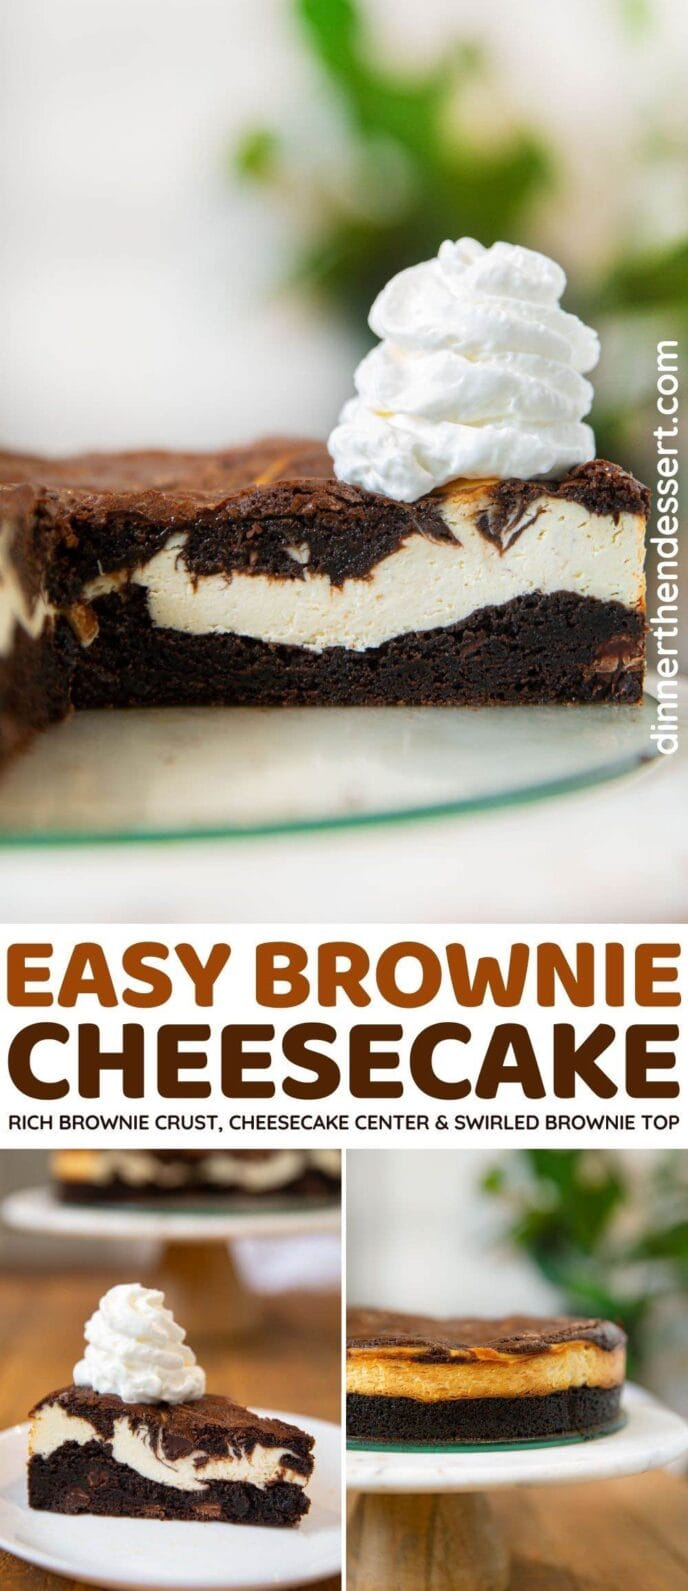 Brownie Cheesecake collage